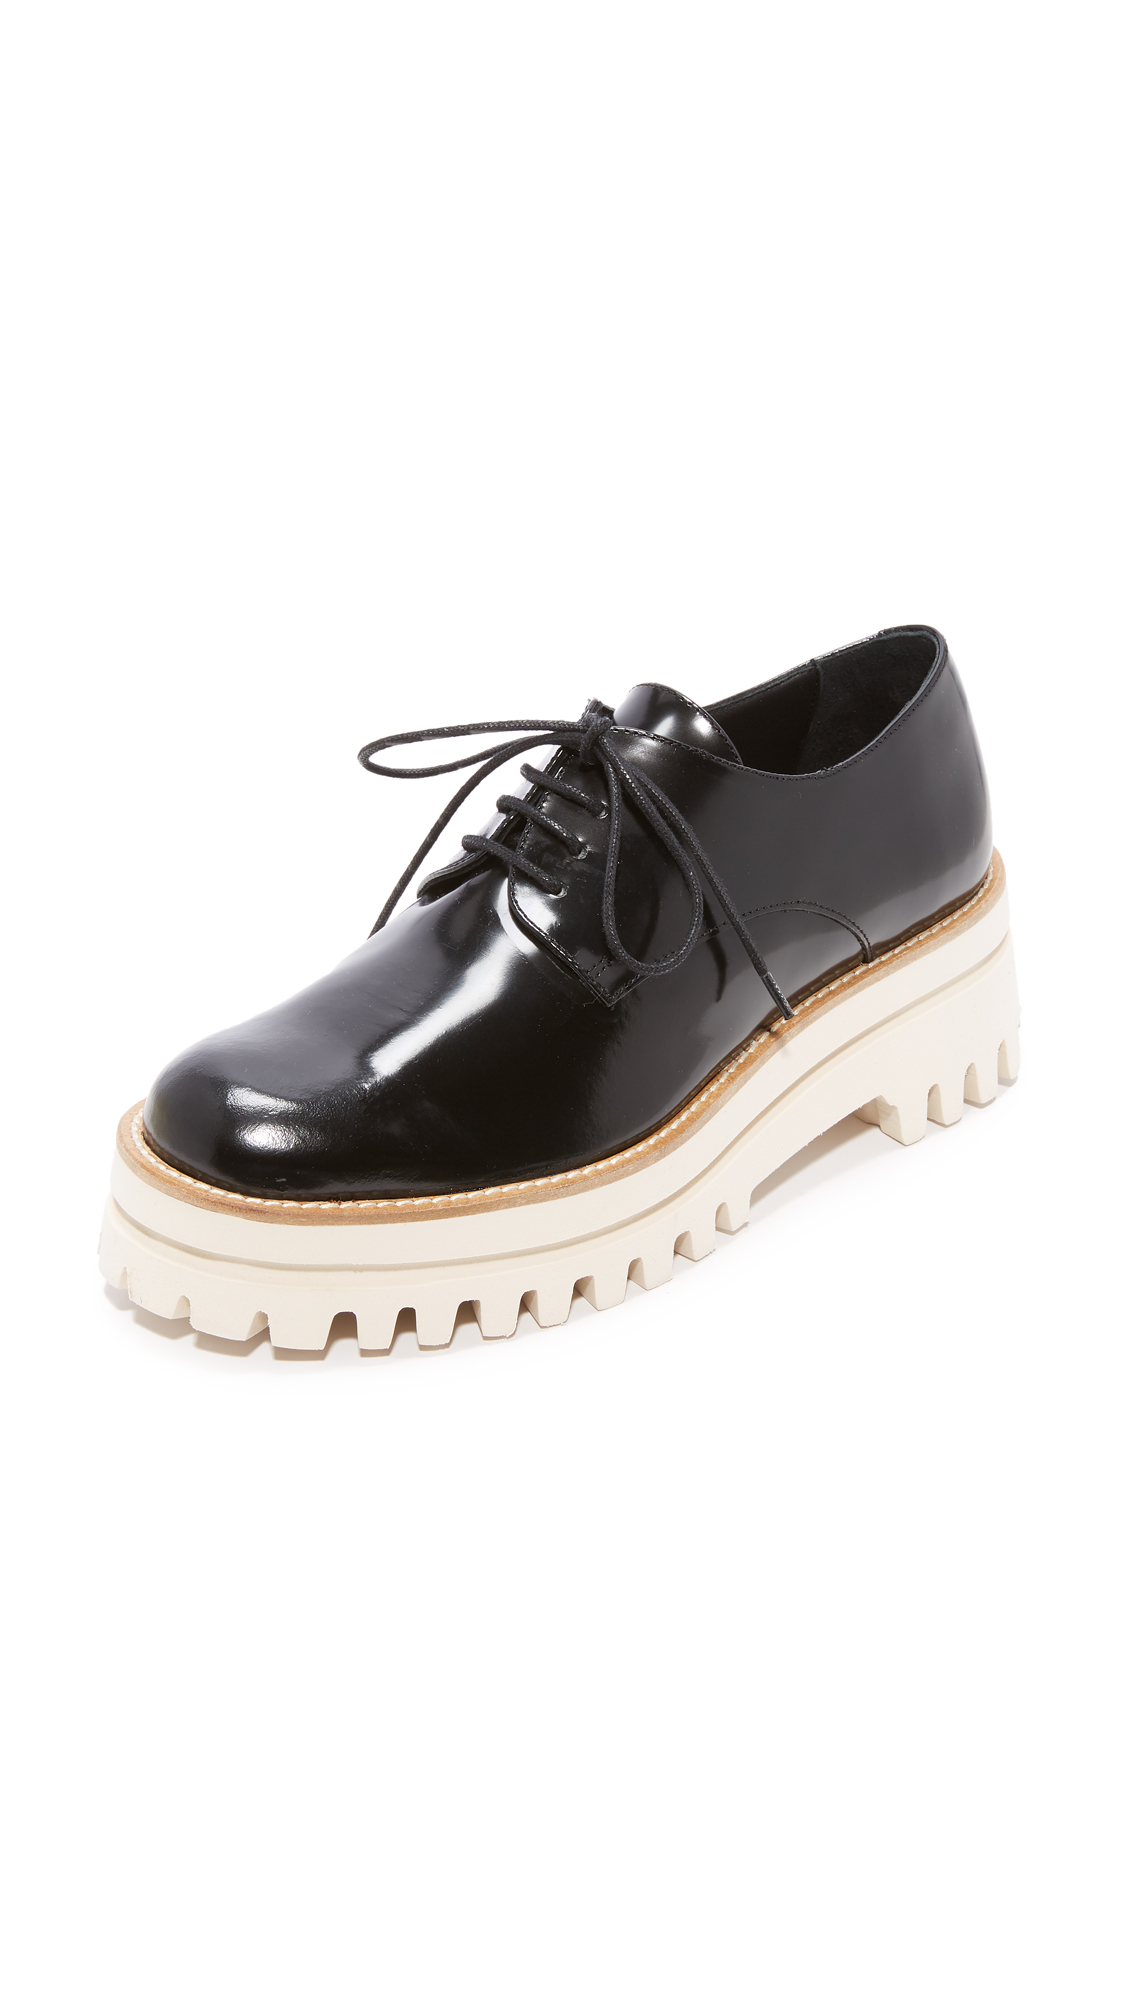 Paloma Barcelo Sunshine Platform Oxfords - Black